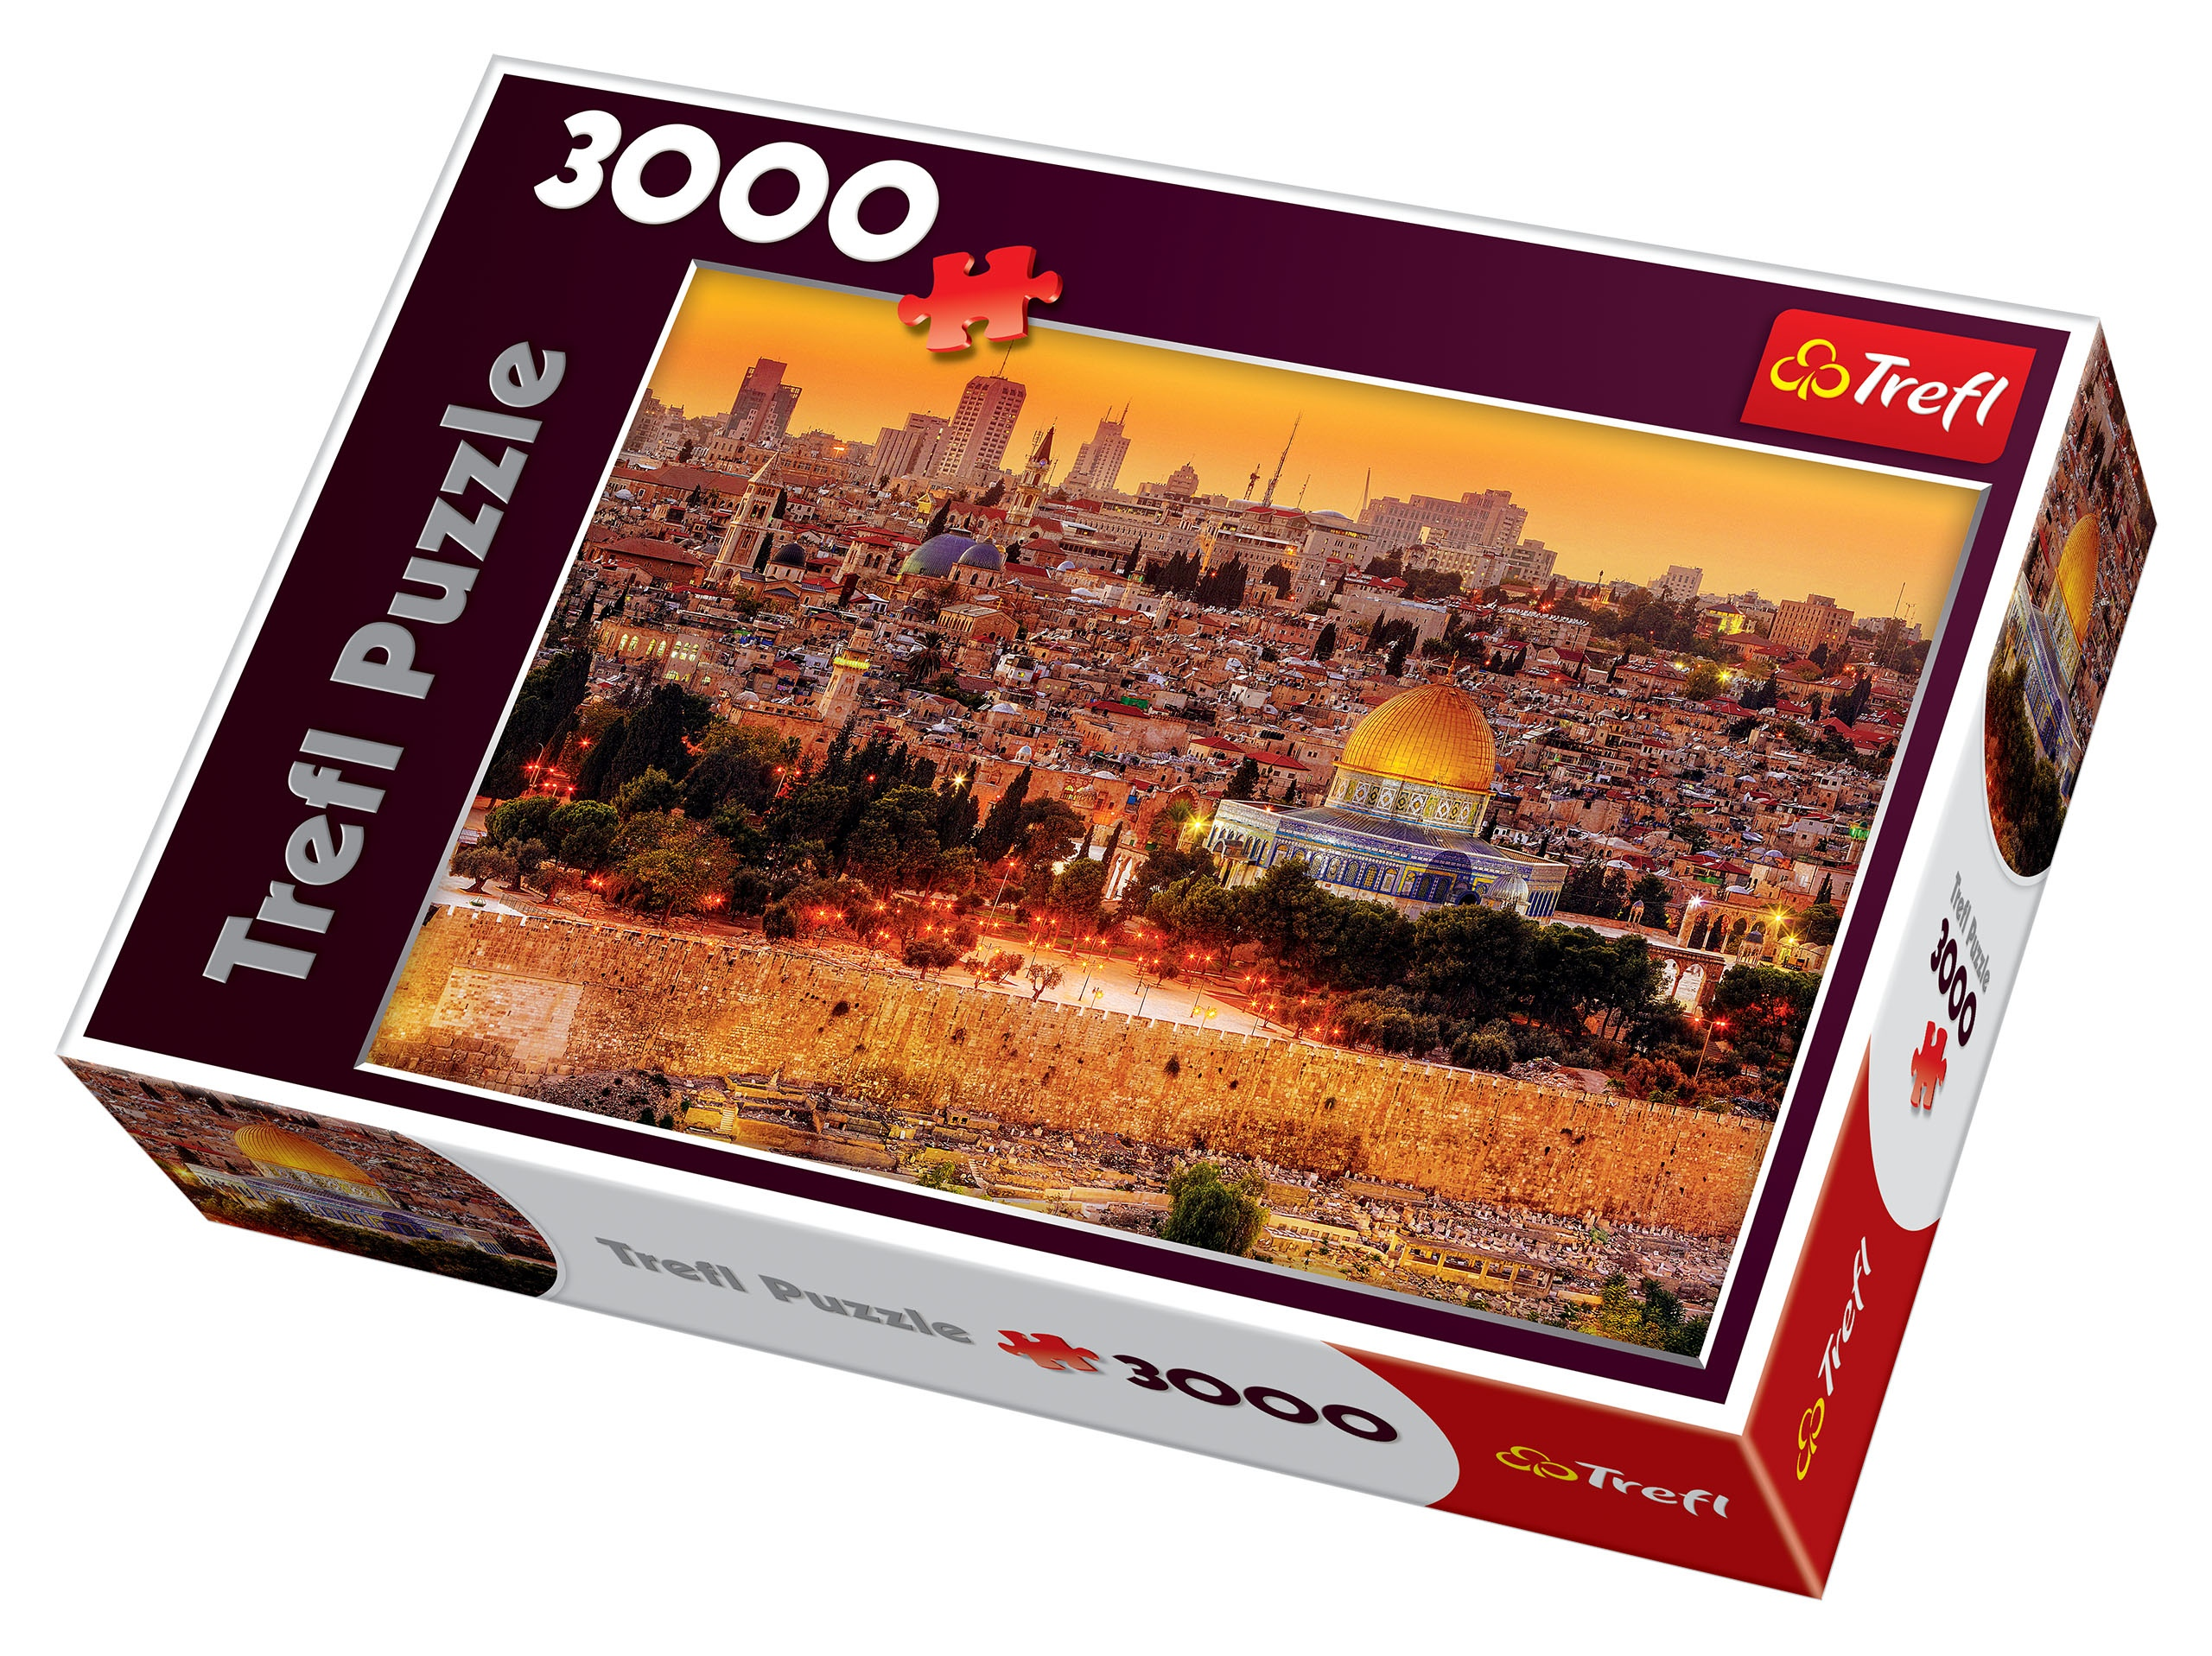 trefl 3000 piece adult large jerusalem roofs view israel holy jigsaw puzzle new 5900511330328 ebay. Black Bedroom Furniture Sets. Home Design Ideas